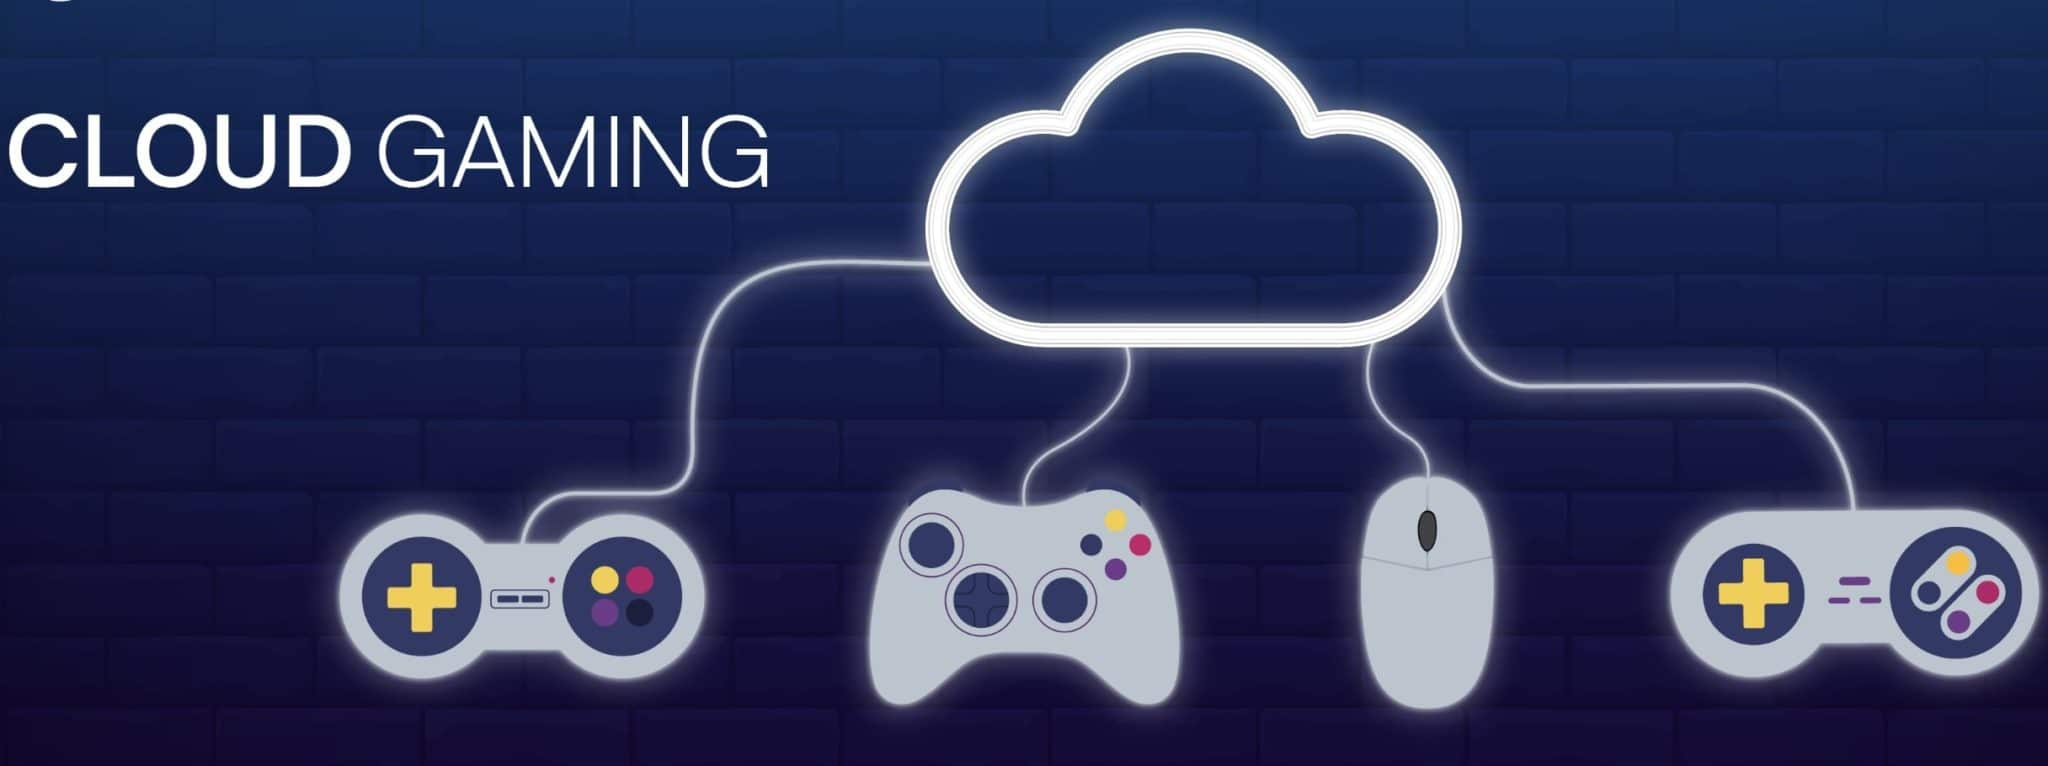 Cloud Gaming Platform